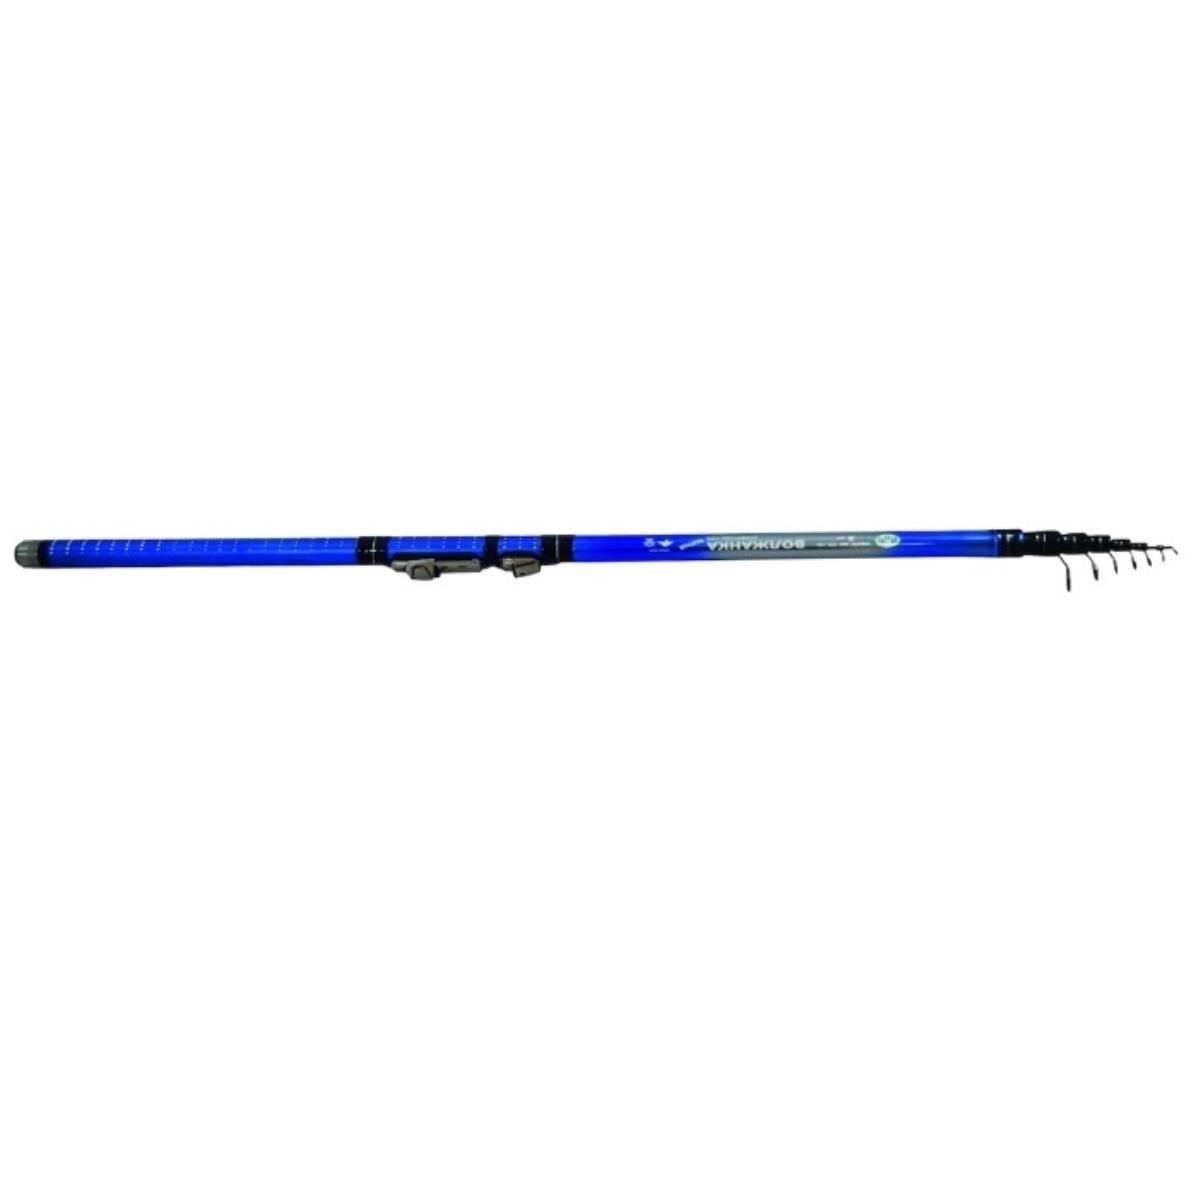 Rod C/K Volzhanka Mini 4,5 M (8 Sections) Test Up To 25 Gr (IM6) 010-0063